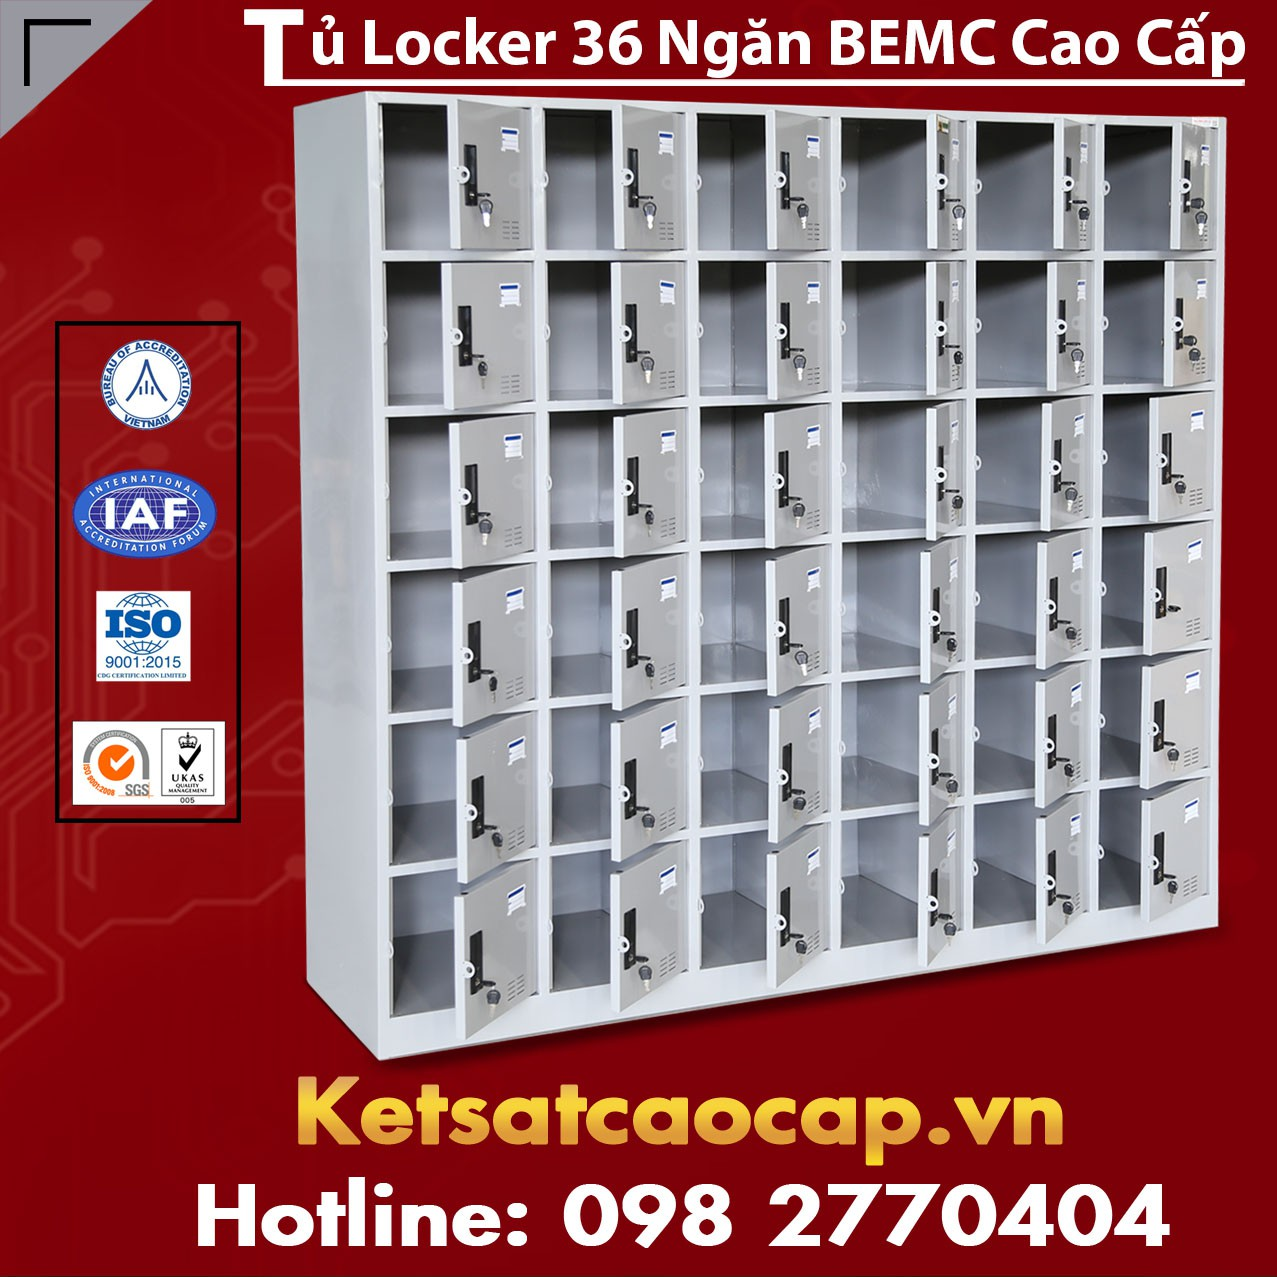 Tu-Locker-36-Ngan-Canh